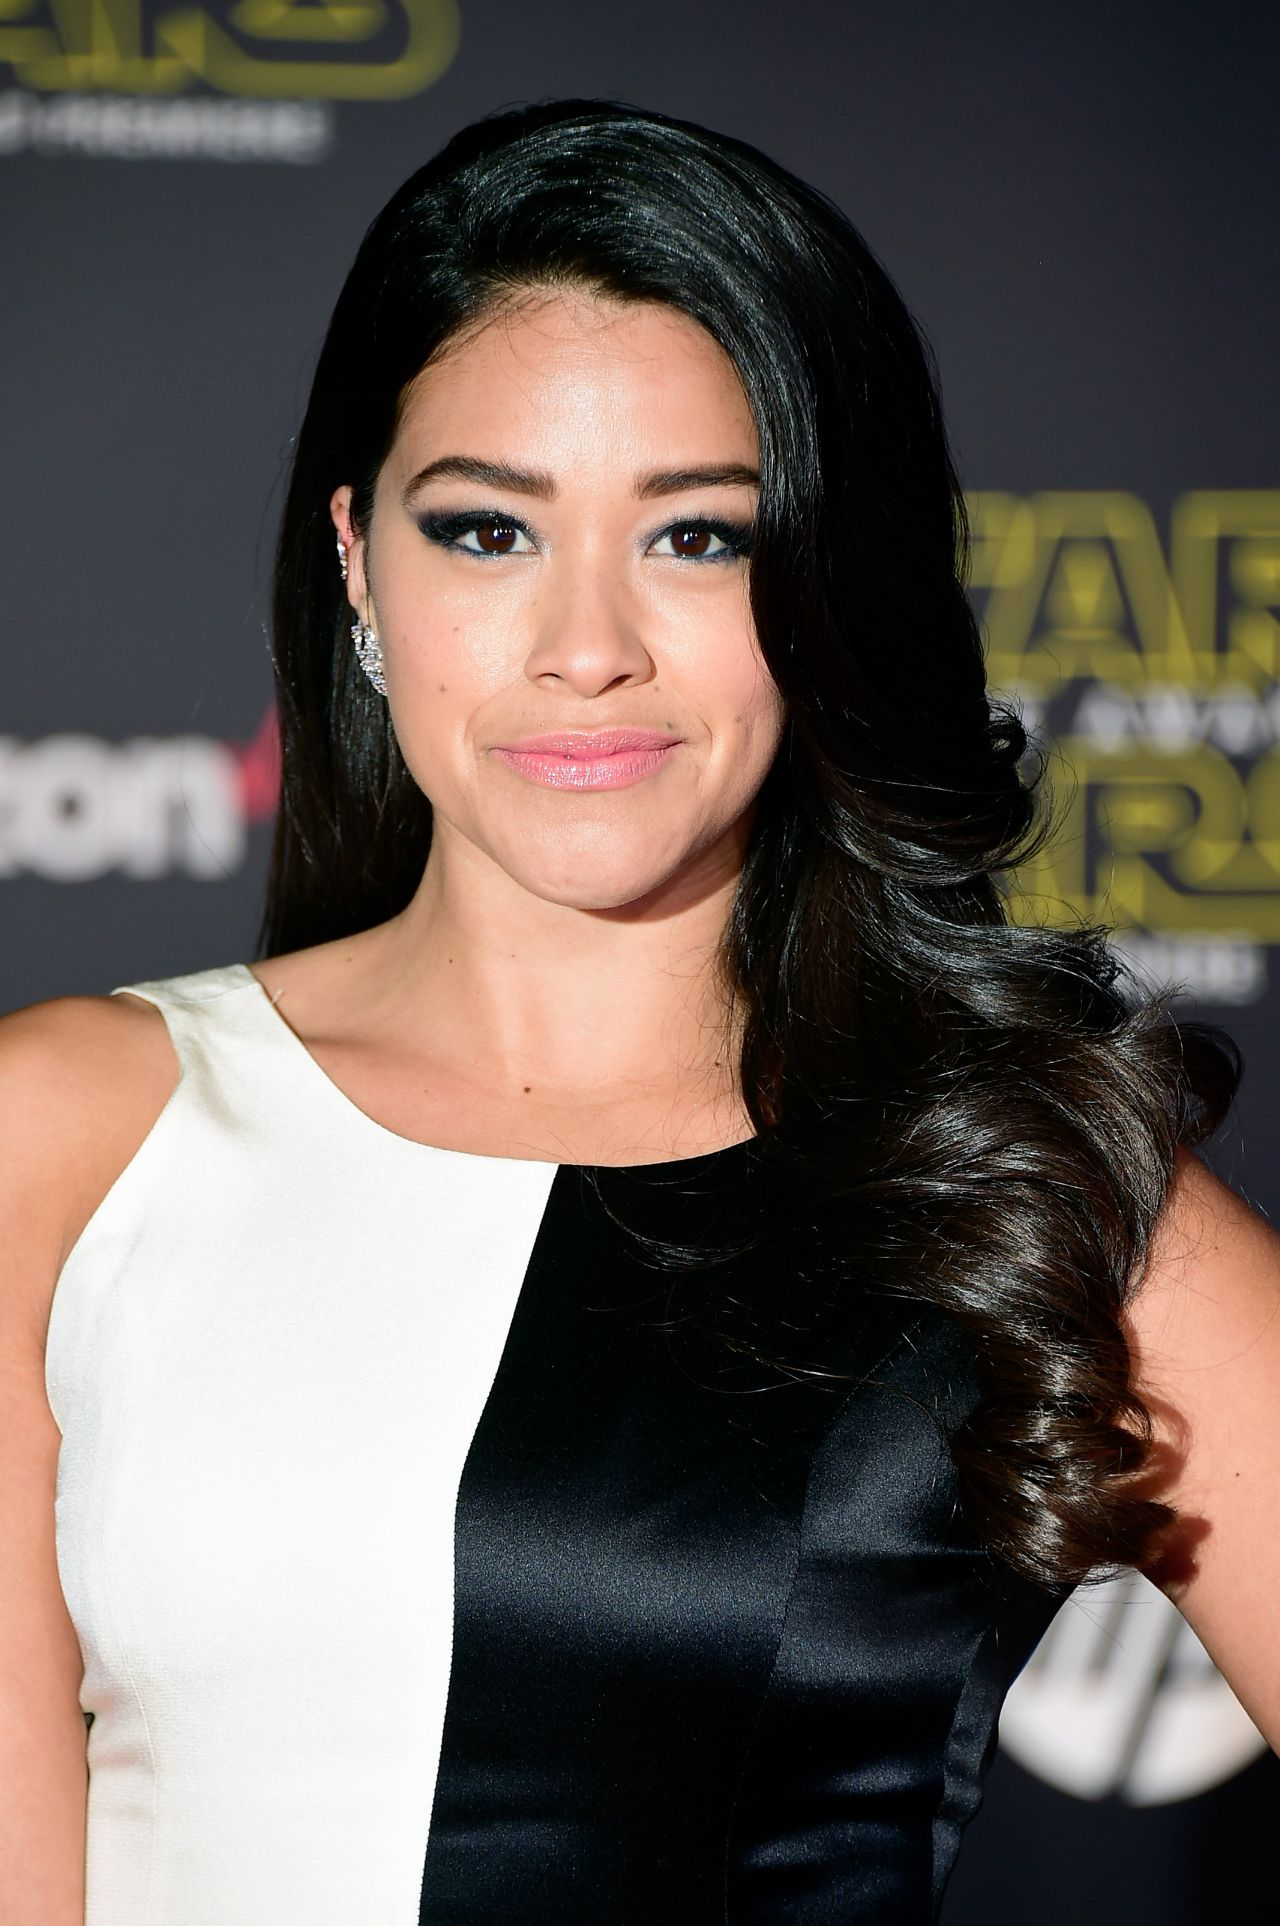 Gina Rodriguez Star Wars The Force Awakens Premiere In